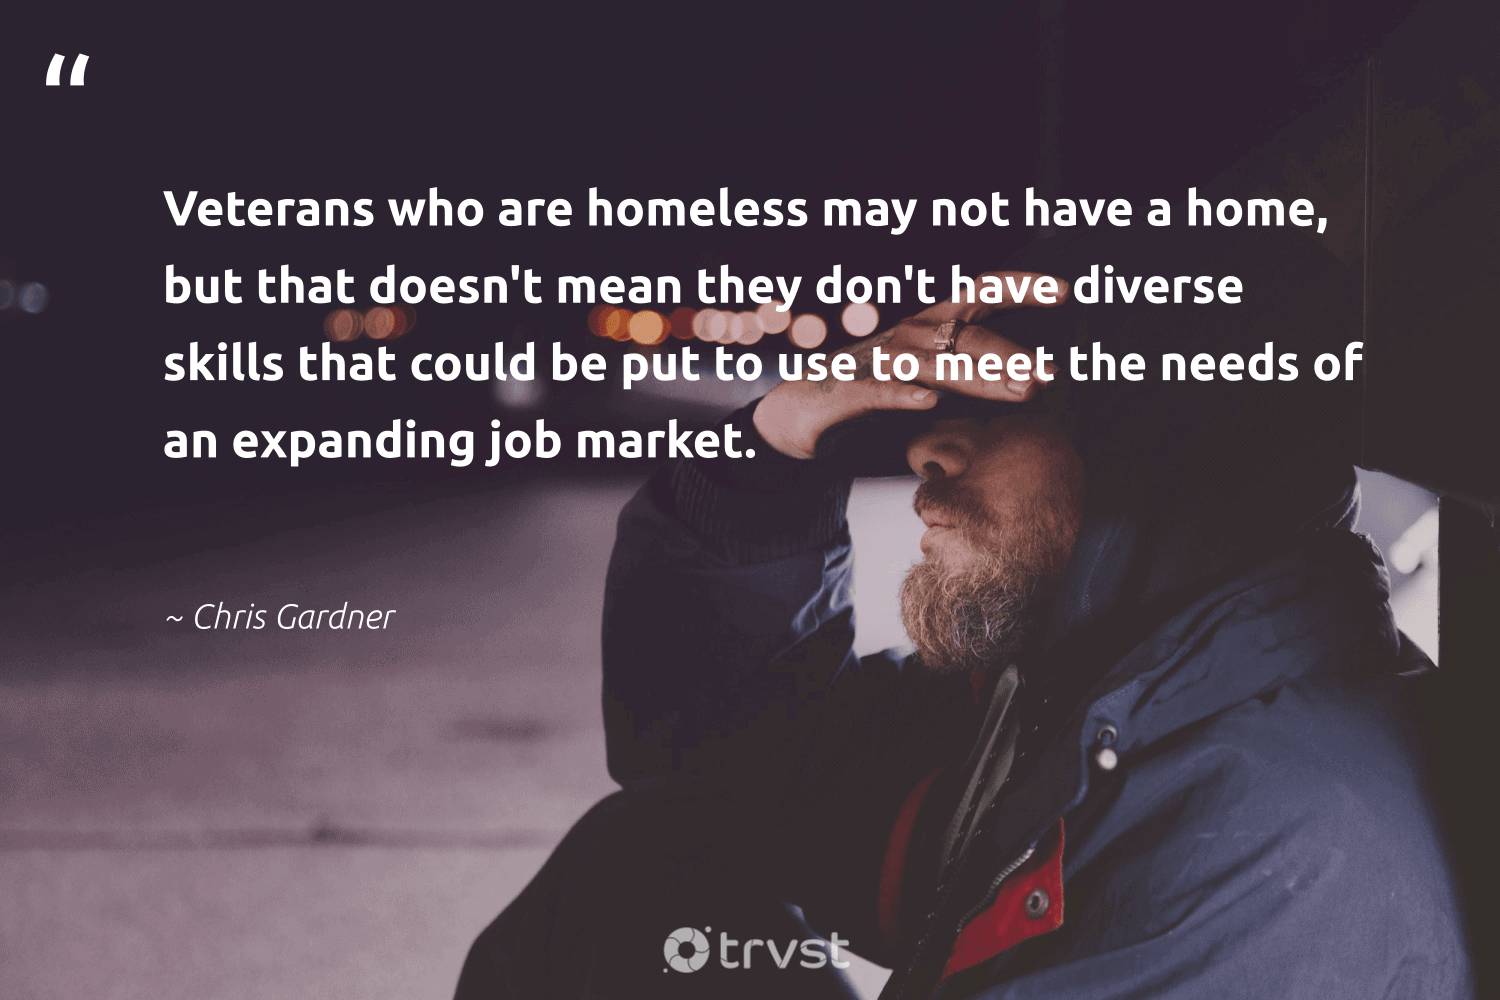 """""""Veterans who are homeless may not have a home, but that doesn't mean they don't have diverse skills that could be put to use to meet the needs of an expanding job market.""""  - Chris Gardner #trvst #quotes #homelessness #homeless #weareallone #inclusion #impact #makeadifference #sustainablefutures #dotherightthing #equalrights #equalopportunity"""